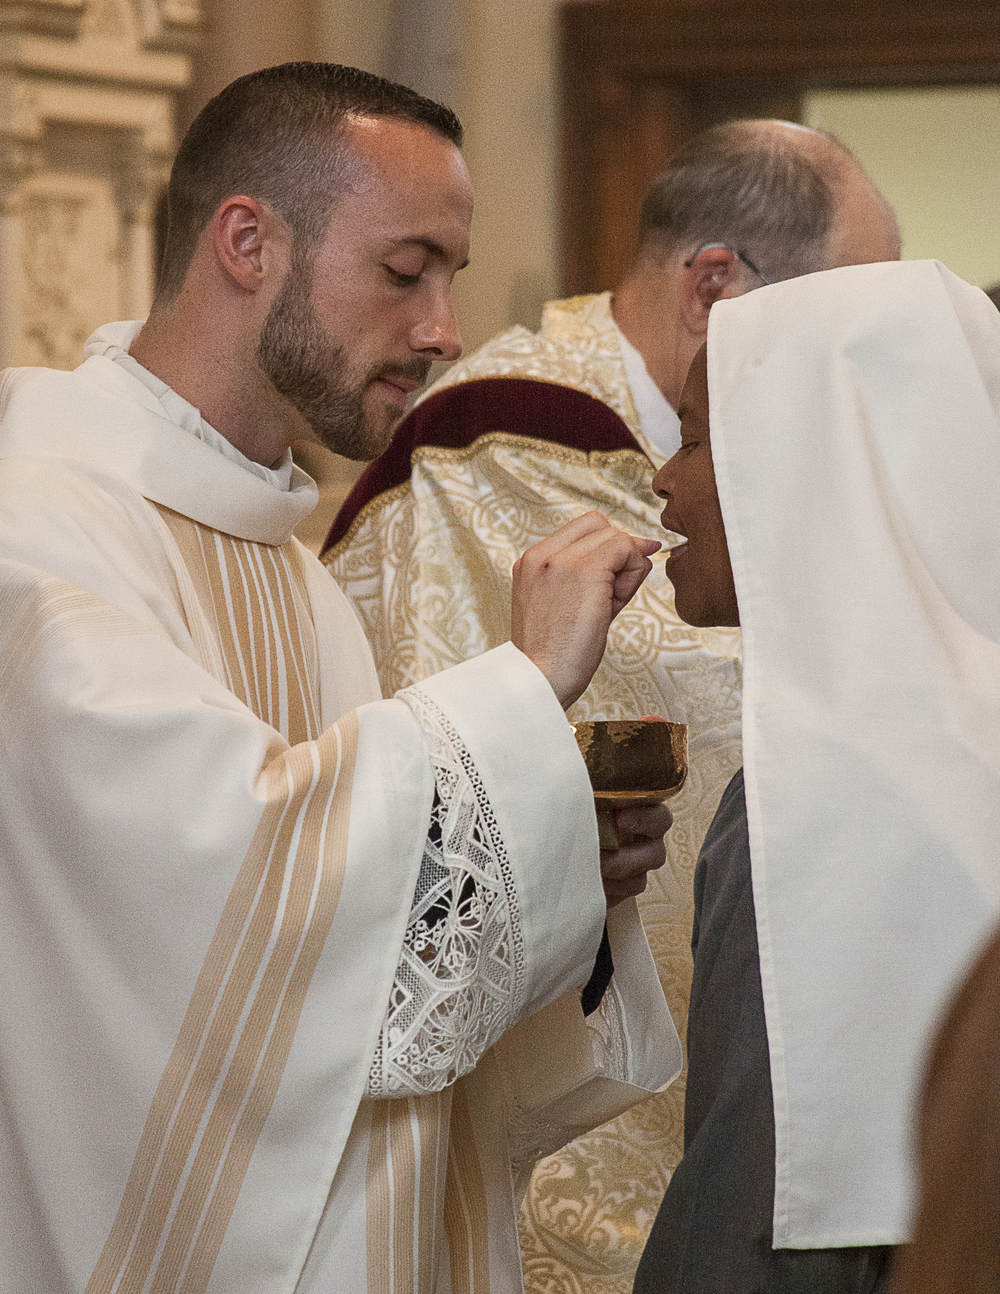 Ordination_0955.jpg